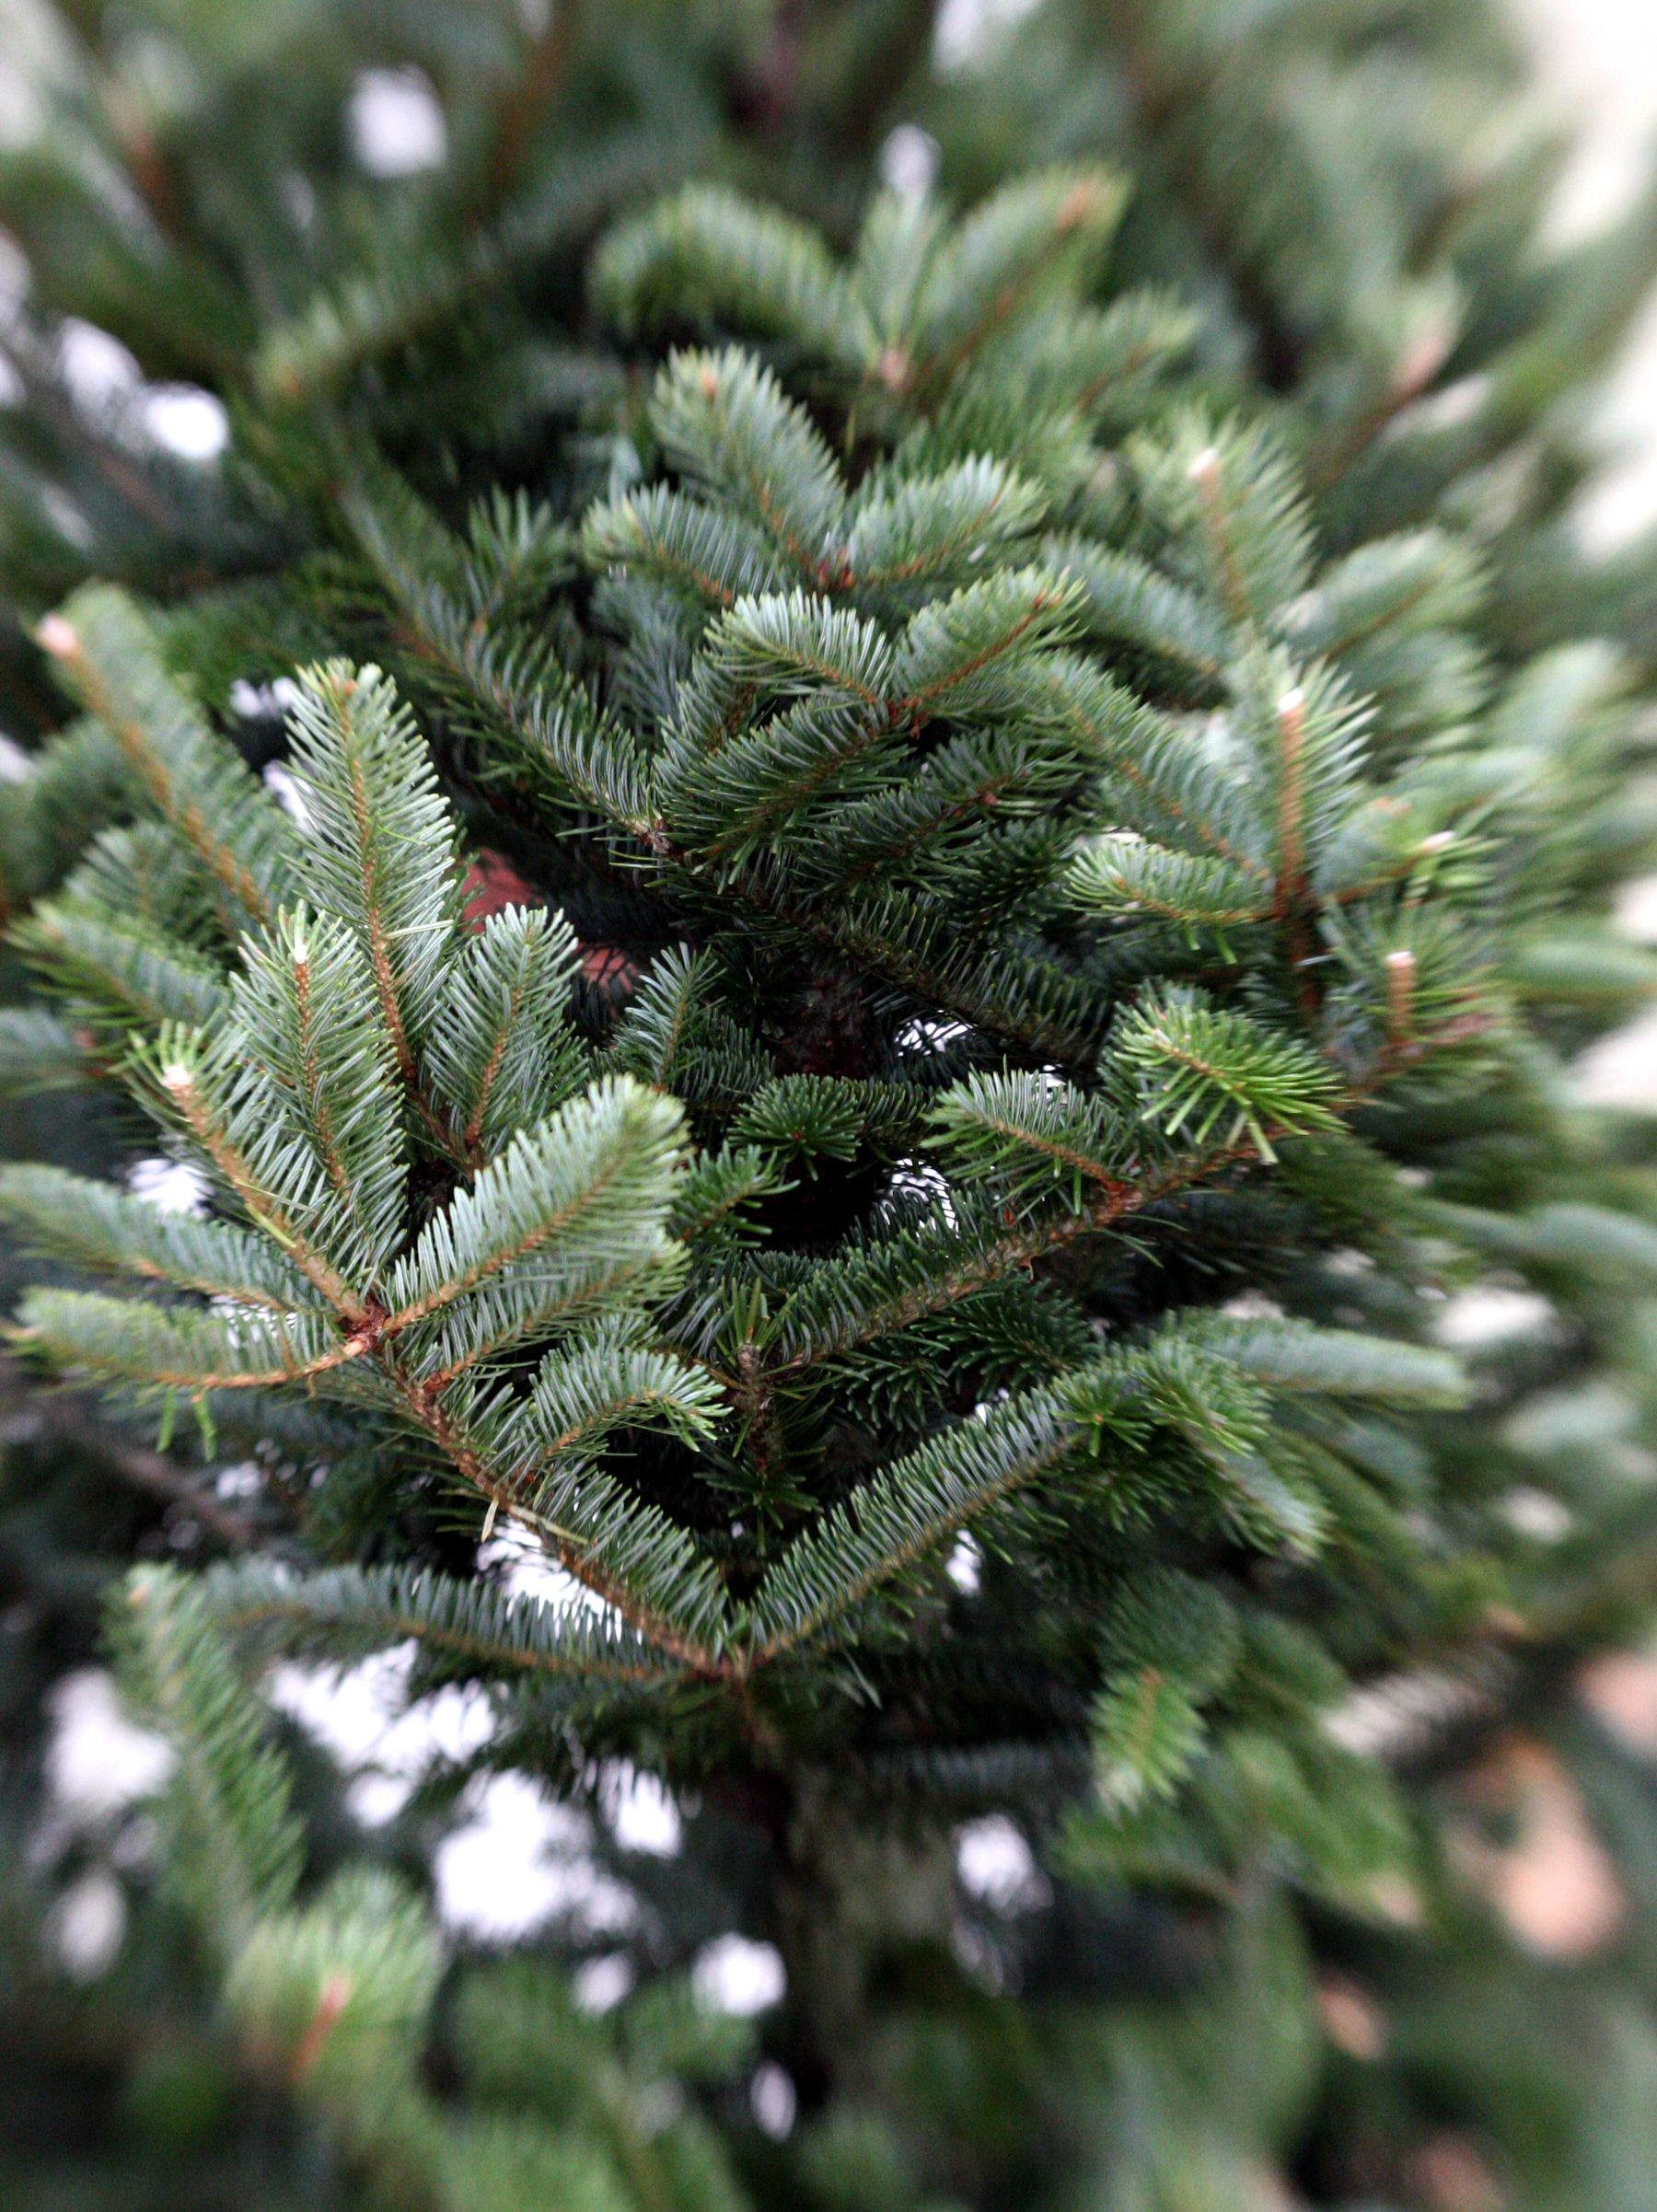 What may look like an ordinary live Christmas tree to many people can turn into a sneezing fest for allergy sufferers. And with their dust and mold, fake trees can be just as bad.